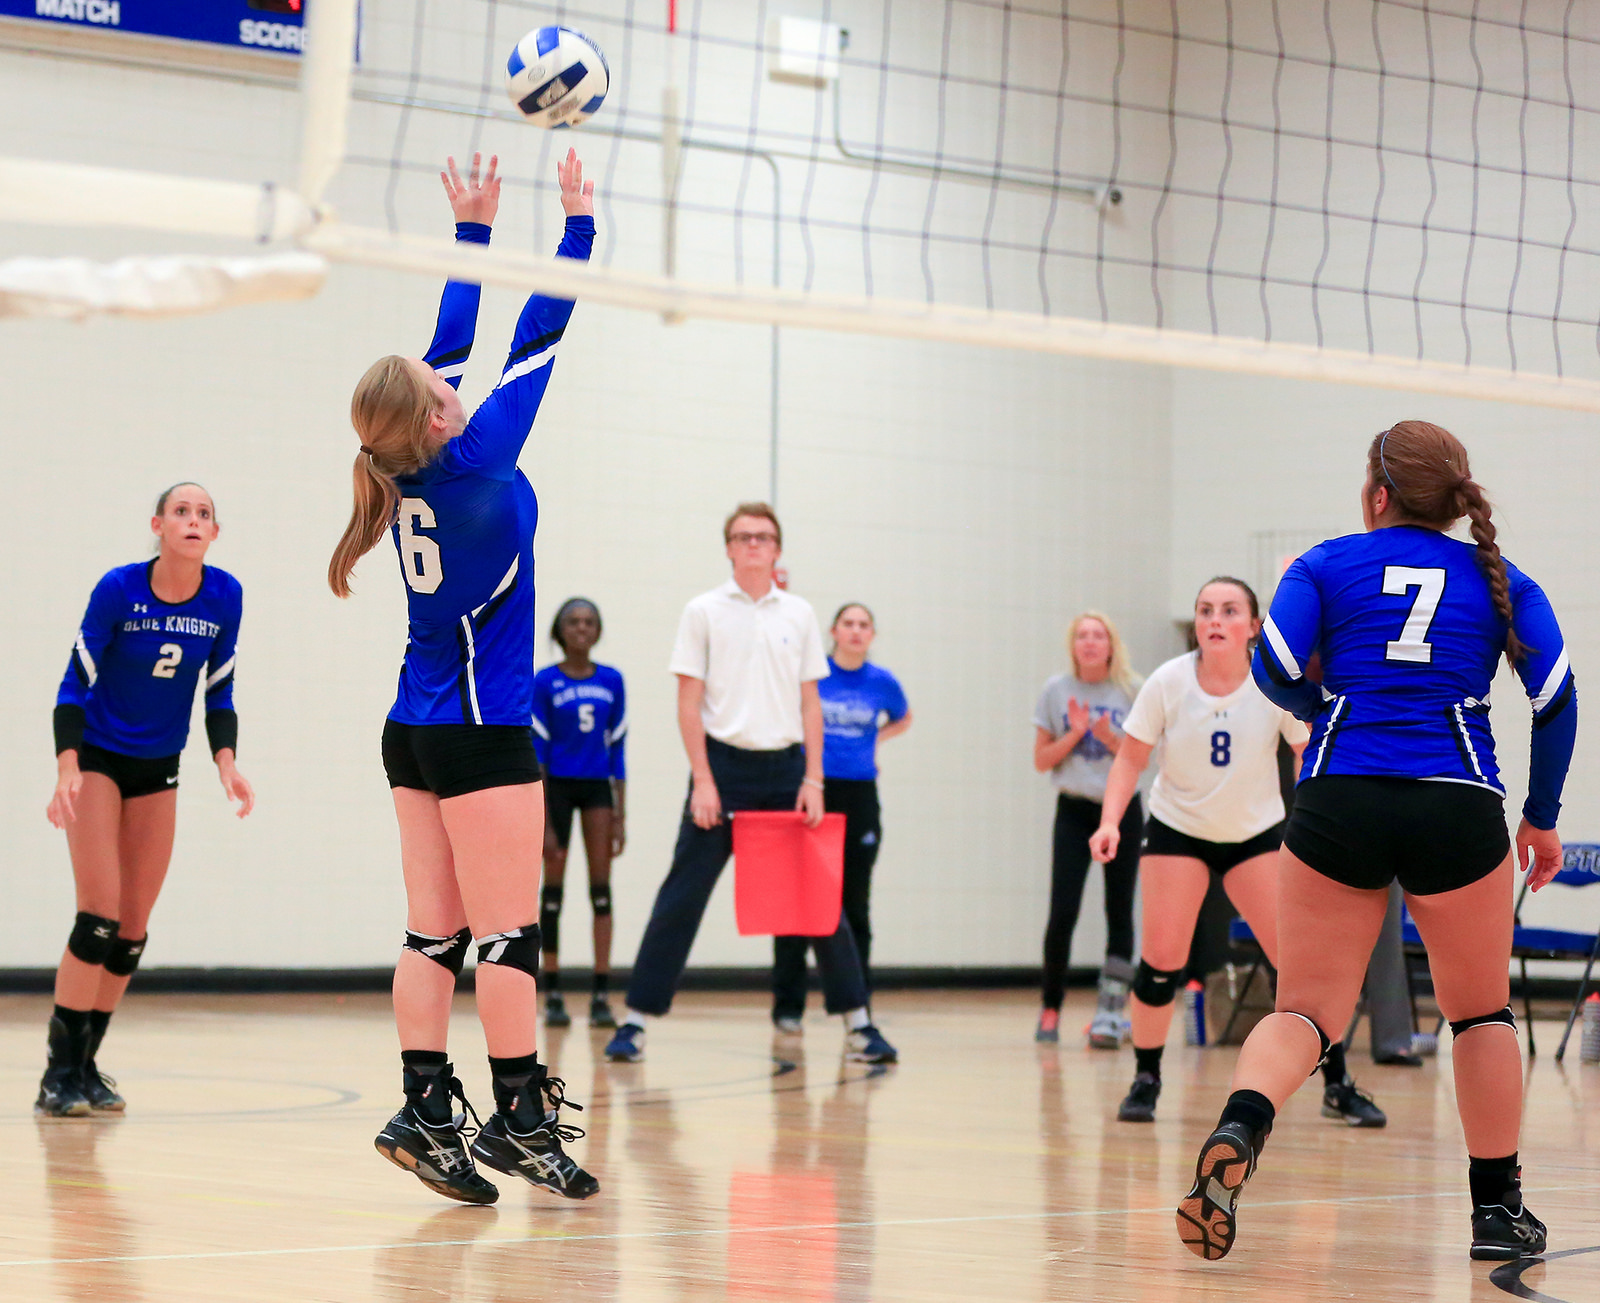 Blue Knights Volleyball team takes down Anoka in 3 straight sets